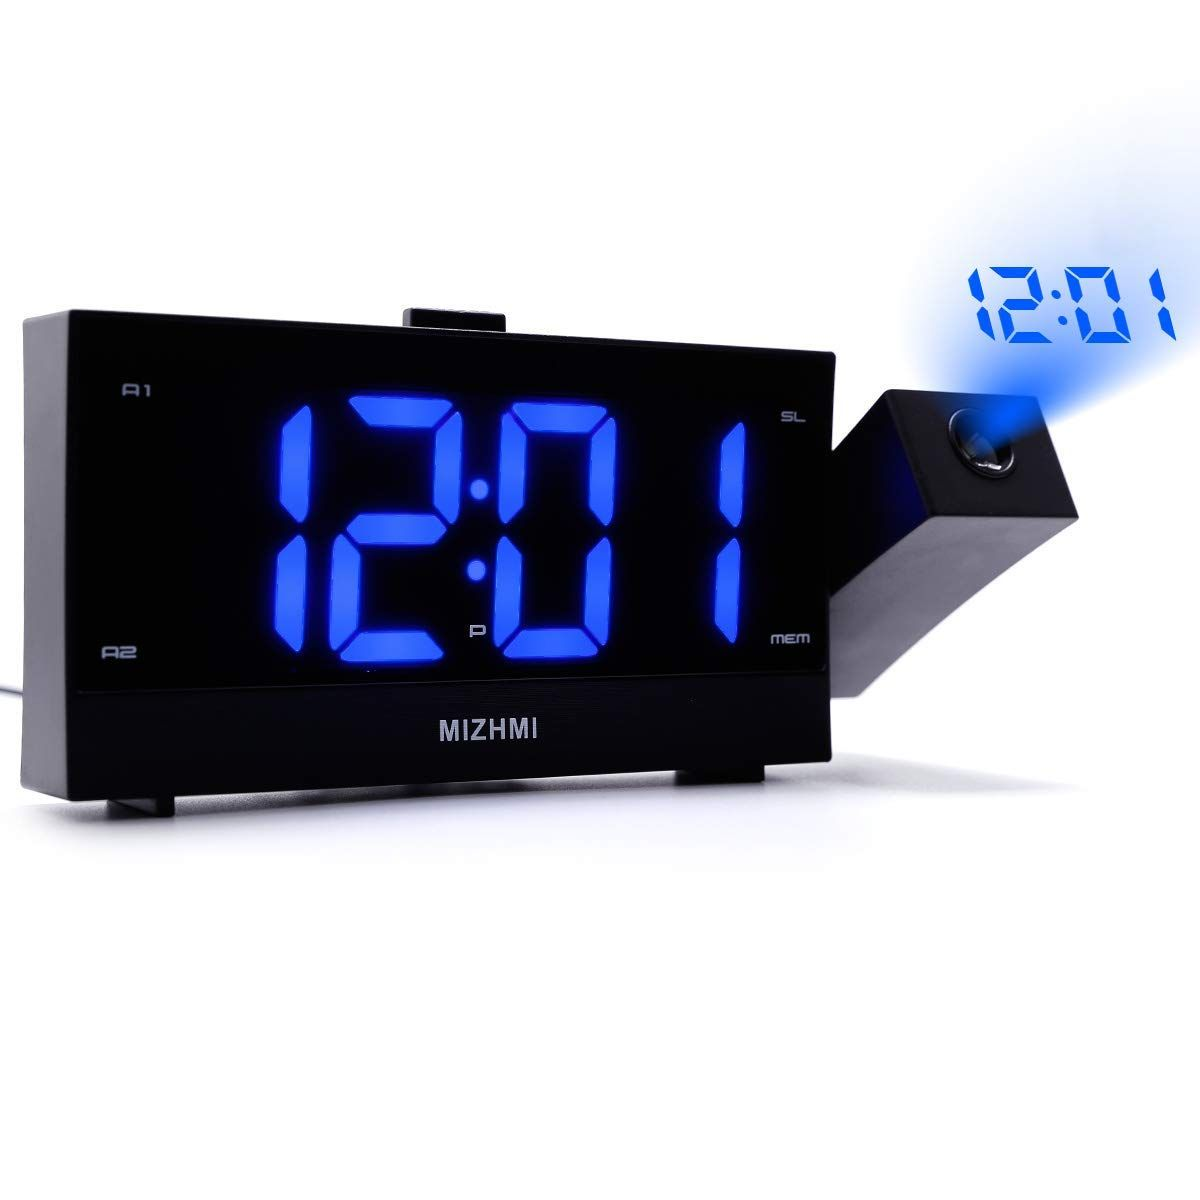 Radio Réveil de Projection Horloge Grand écran LED Alarme